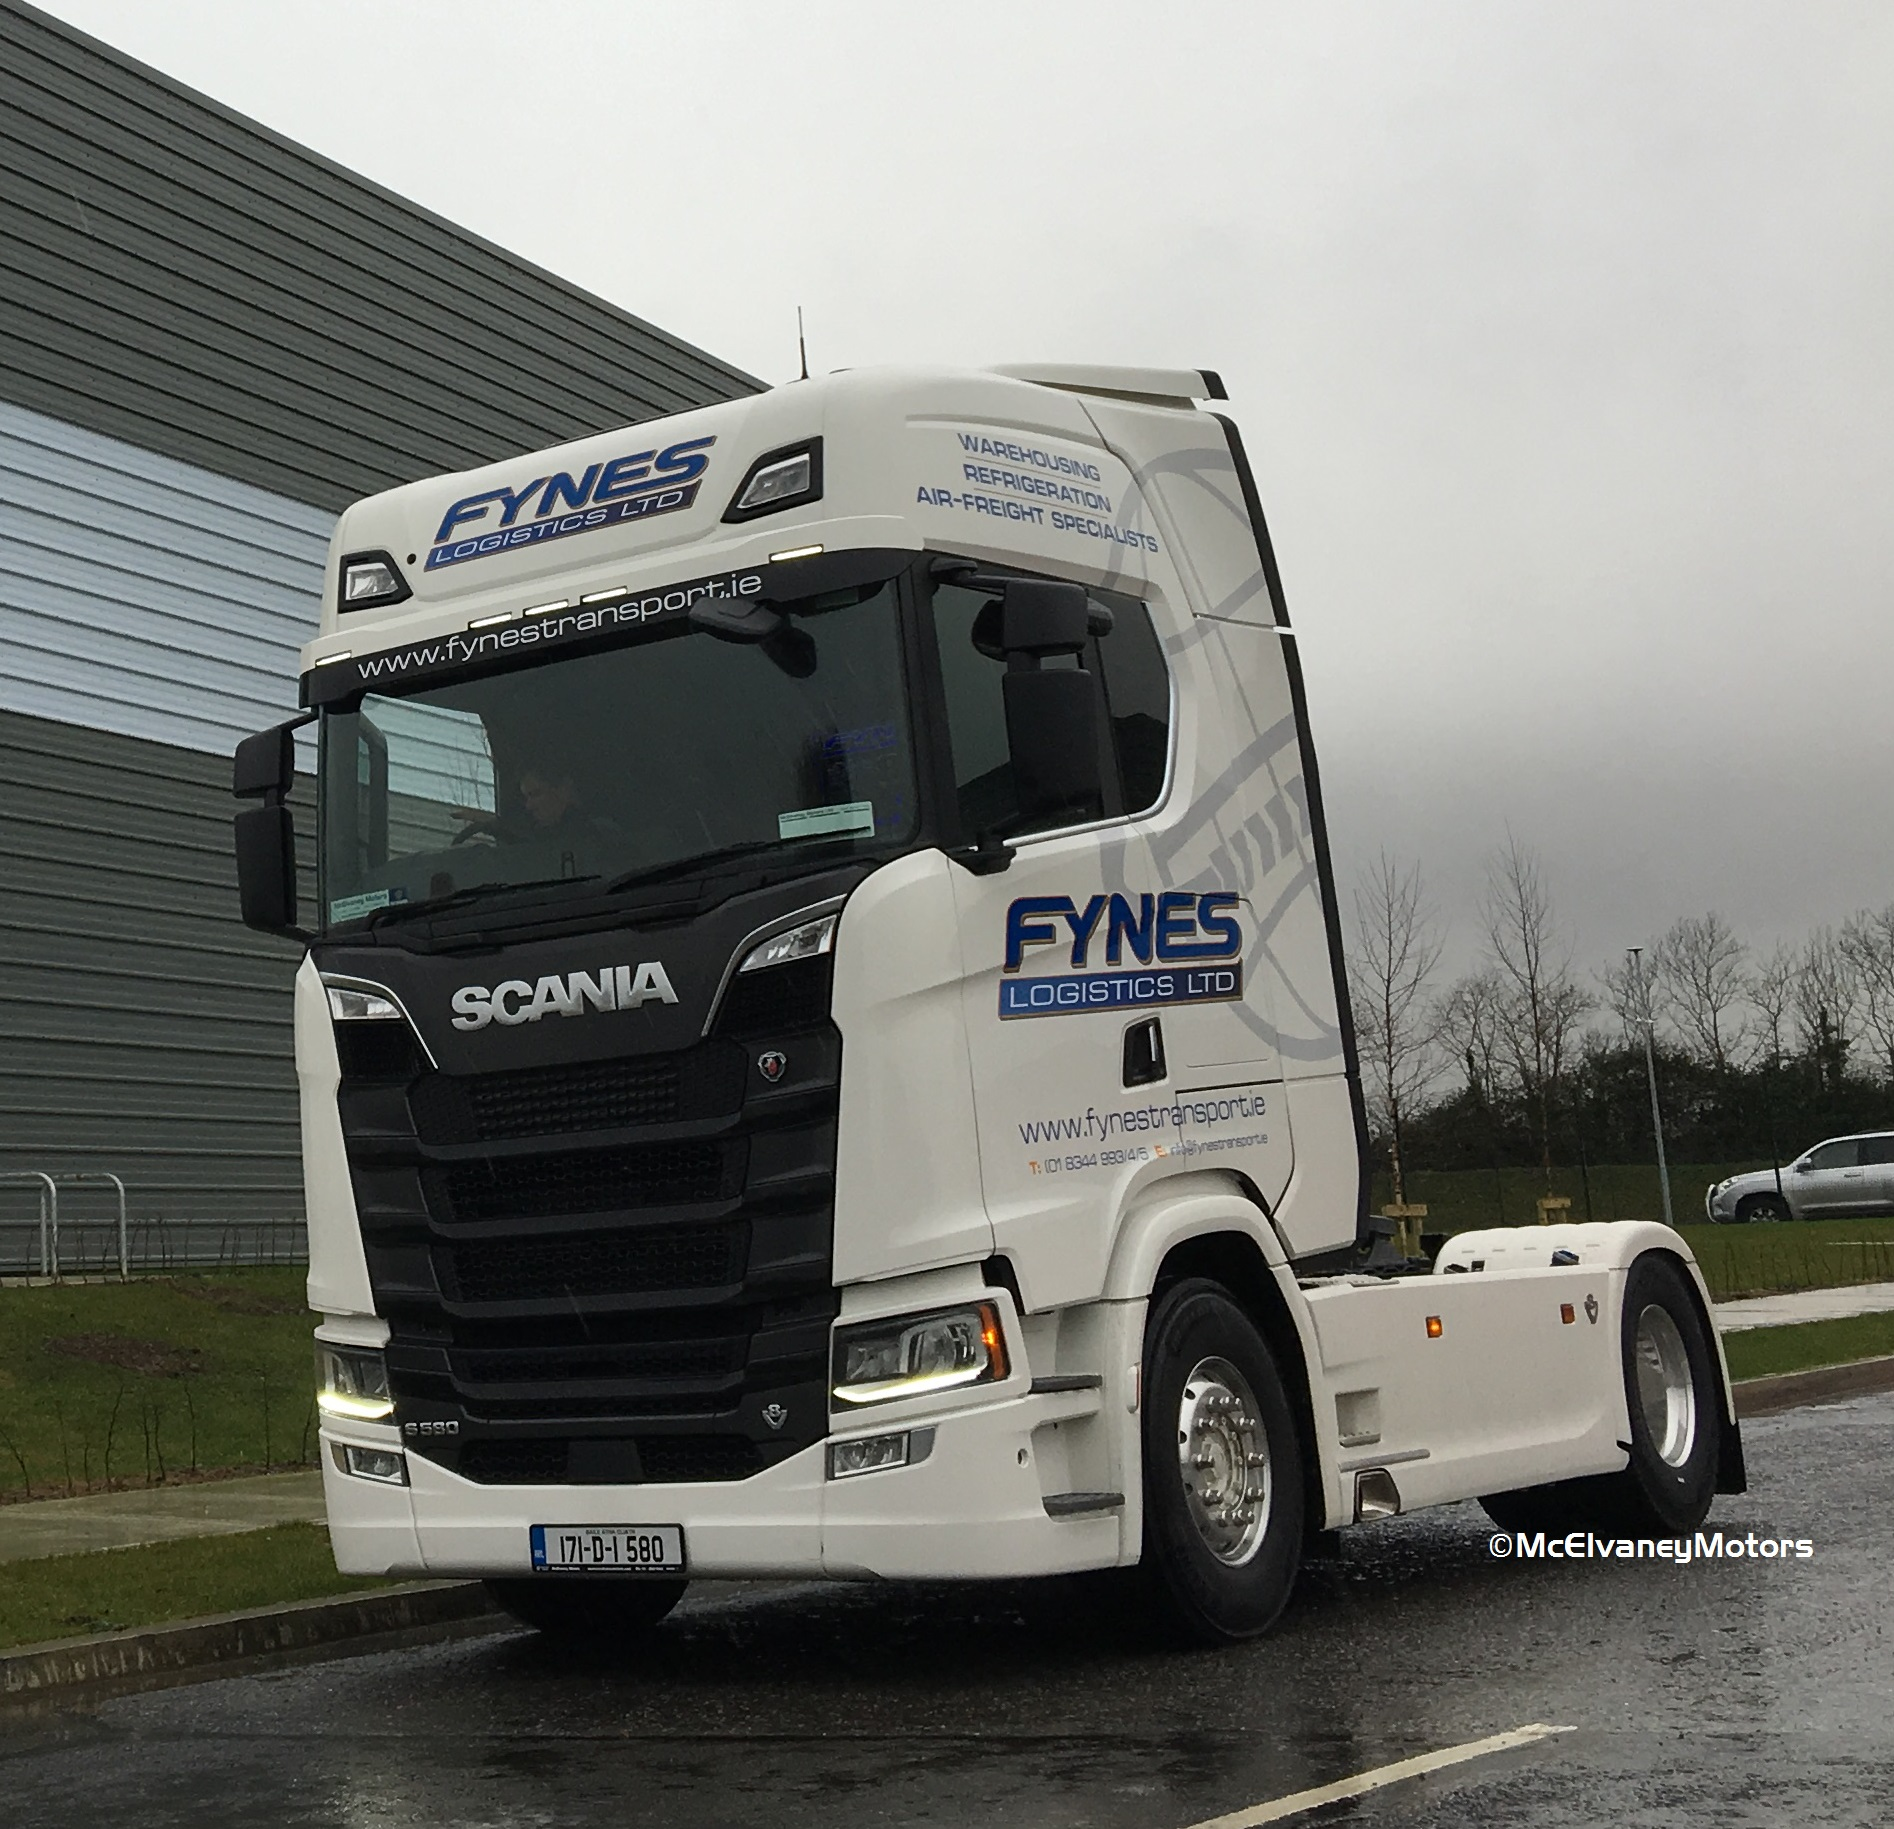 Our First New Generation Scania Delivered!